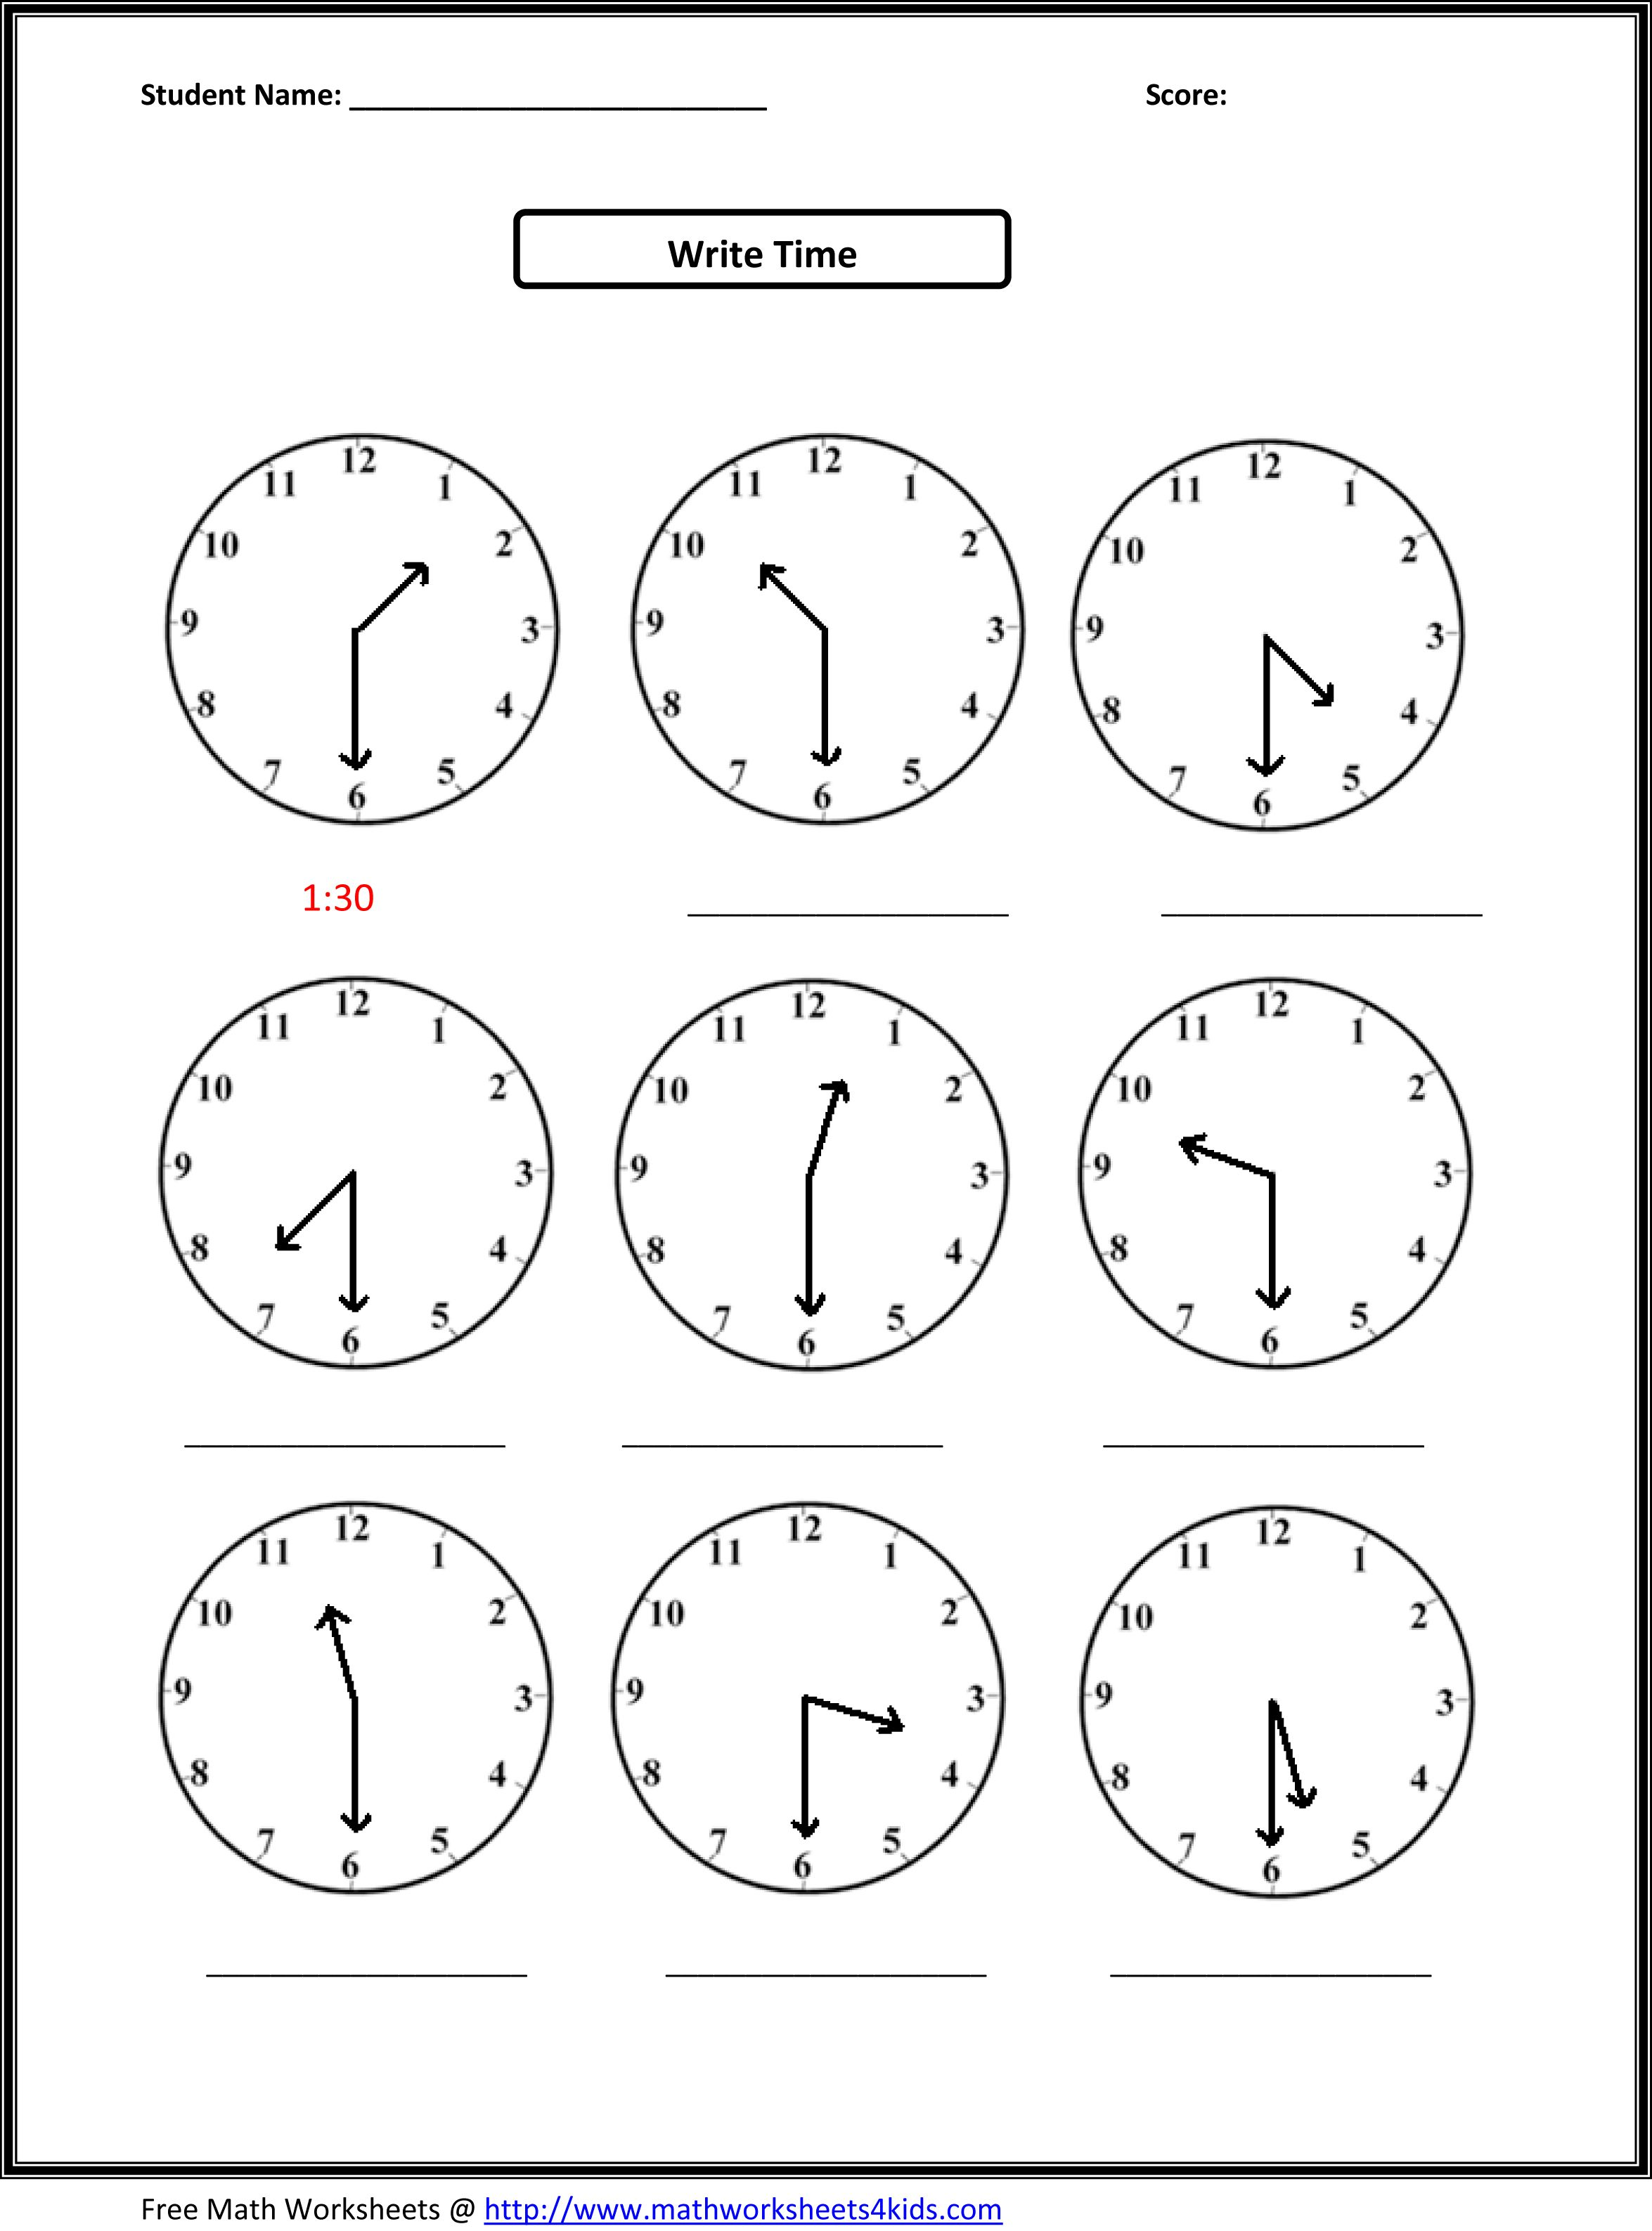 Proatmealus  Gorgeous Worksheet On Time For Grade   Reocurent With Great Free Printable Telling Time Worksheets Nd Grade  Reocurent With Adorable Elementary Worksheets Printable Also Free Worksheets For Teachers To Print In Addition Question Tags Worksheets Exercises And Present Tense And Past Tense Worksheet As Well As Blank Abc Order Worksheets Additionally Long Division Decimals Worksheets From Reocurentcom With Proatmealus  Great Worksheet On Time For Grade   Reocurent With Adorable Free Printable Telling Time Worksheets Nd Grade  Reocurent And Gorgeous Elementary Worksheets Printable Also Free Worksheets For Teachers To Print In Addition Question Tags Worksheets Exercises From Reocurentcom